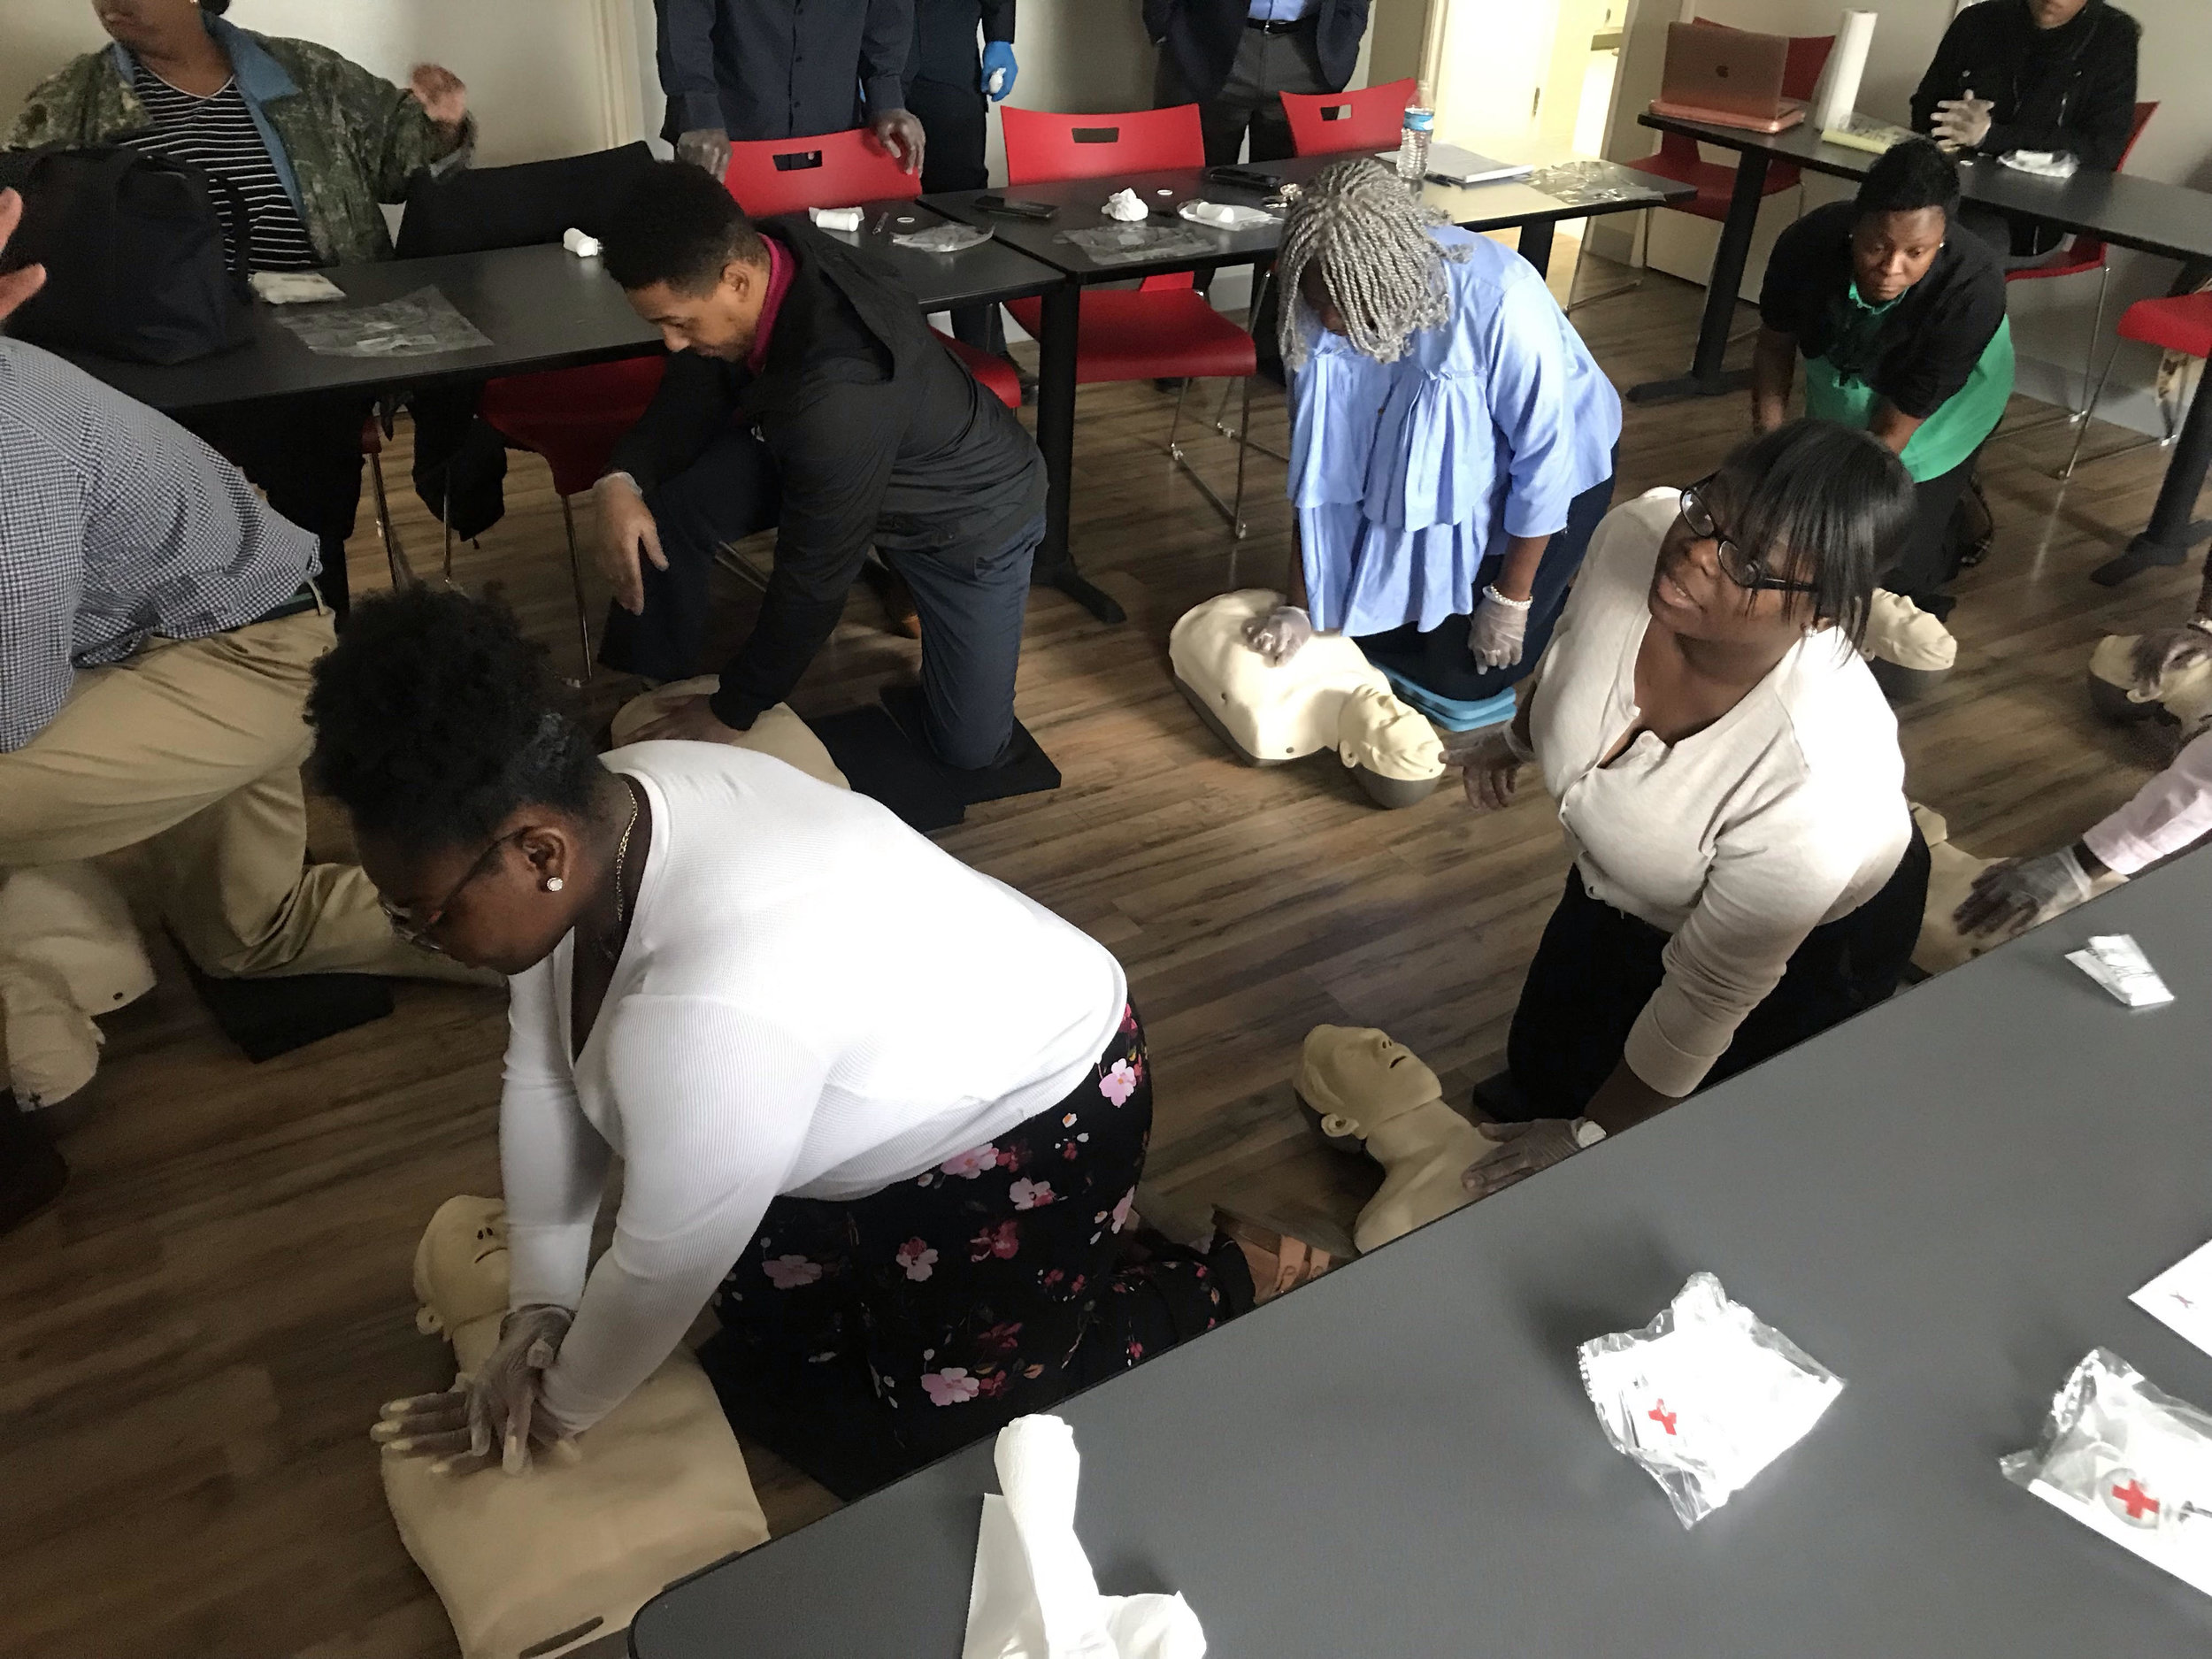 CPR training 1.jpg